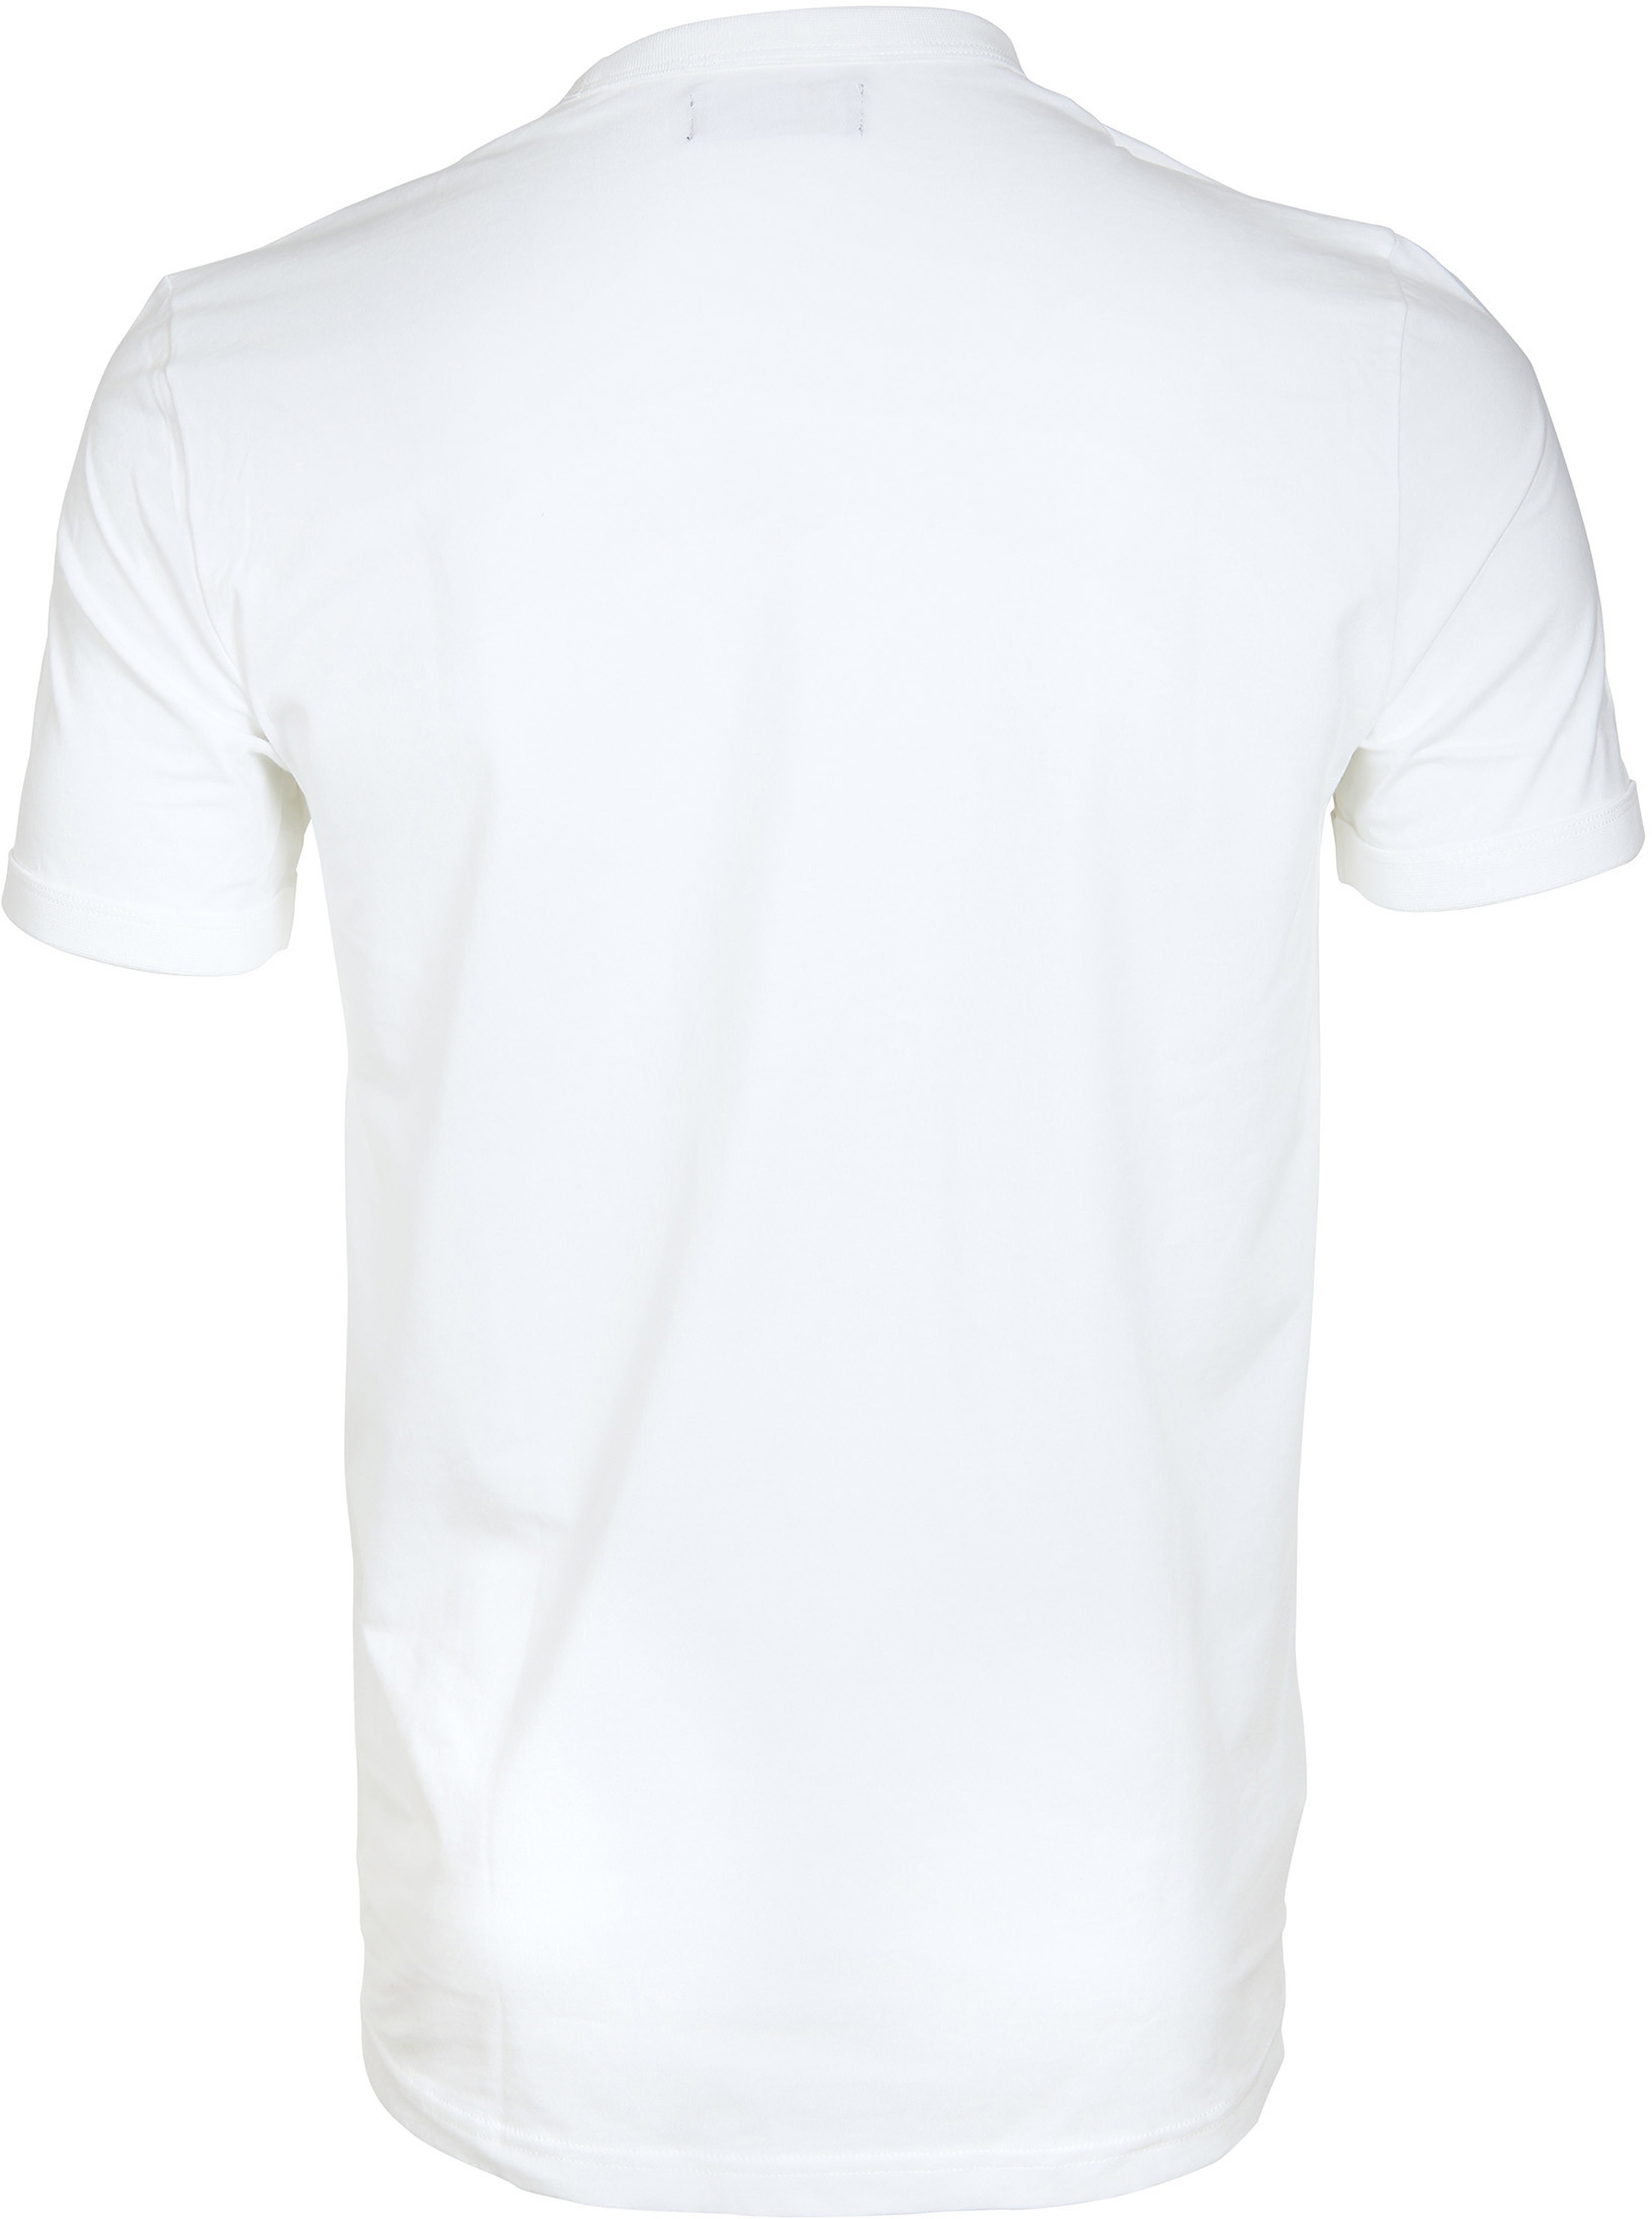 Fred Perry Ringer T-Shirt Wit foto 2